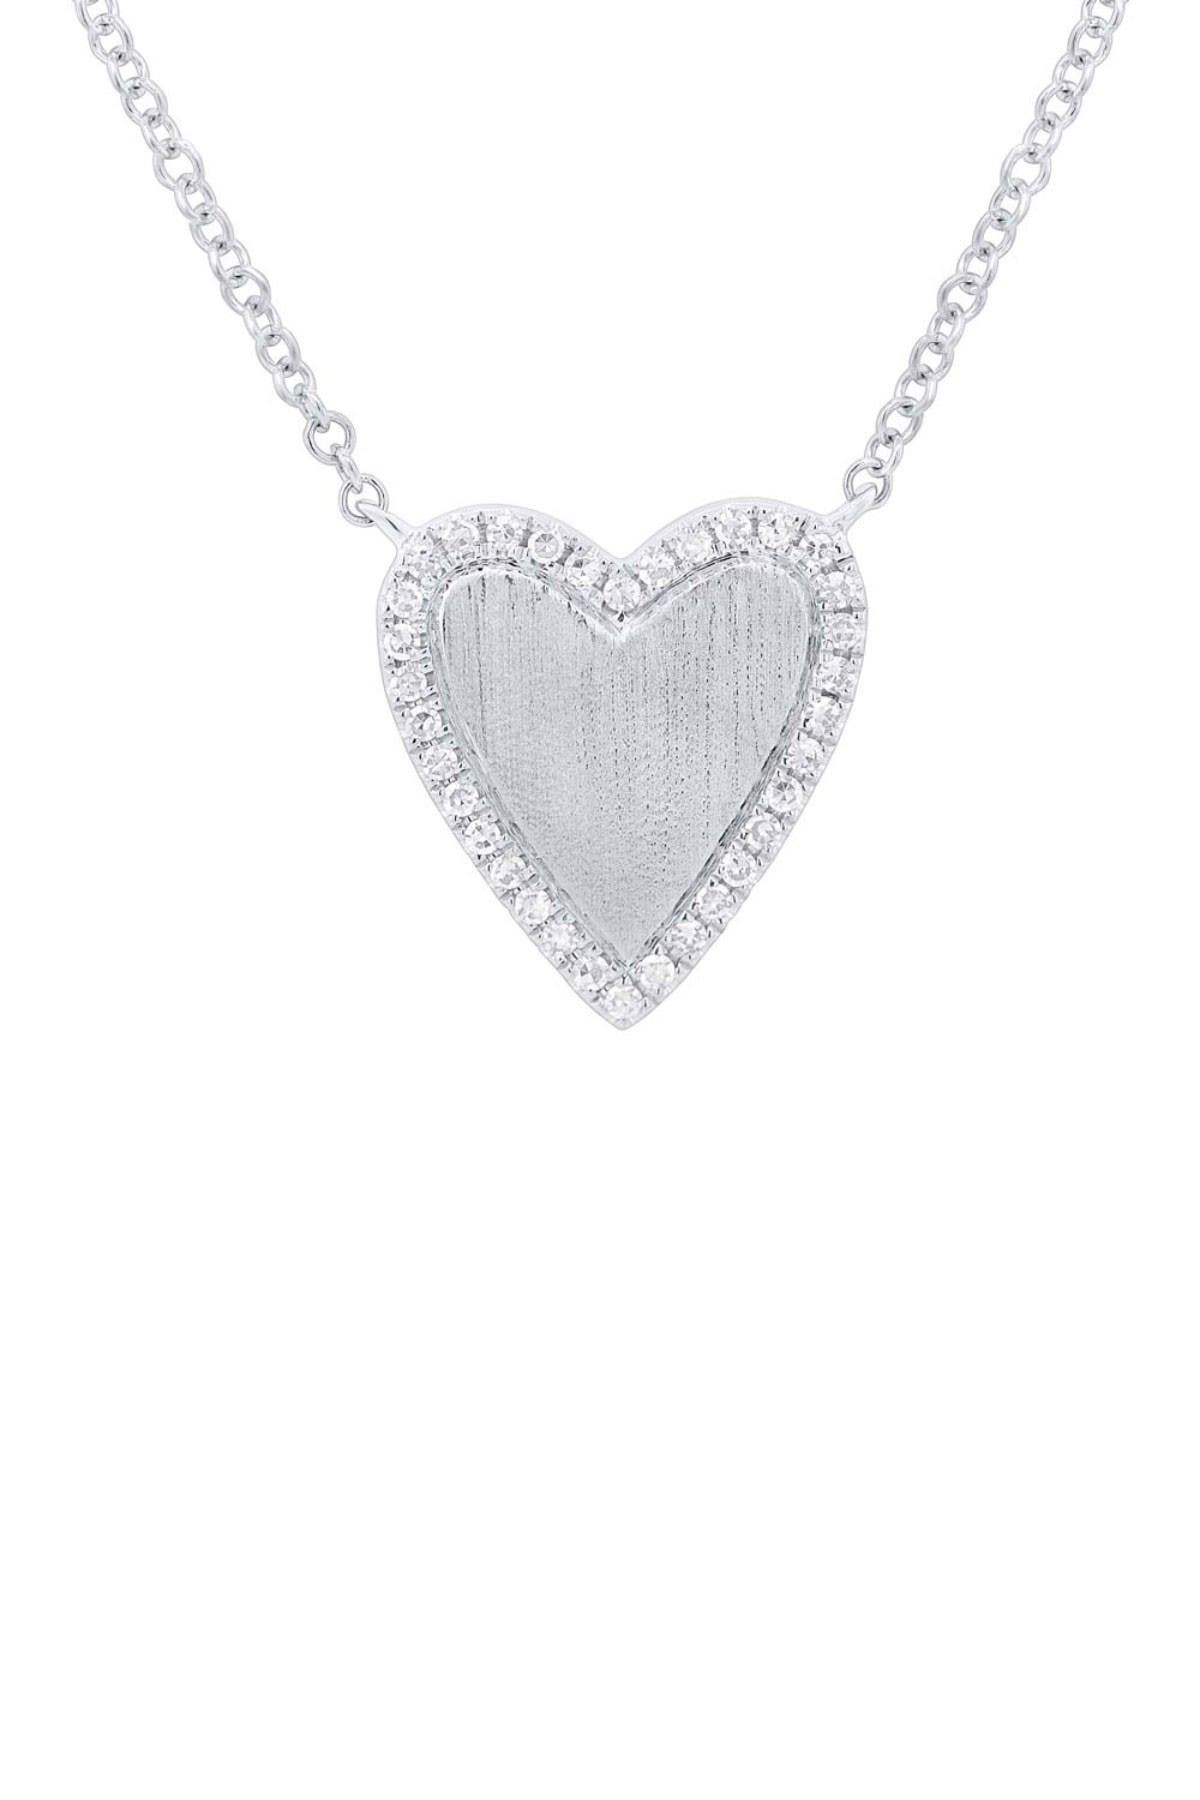 Image of Ron Hami 14K White Gold Pave Diamond Heart Pendant Necklace - 0.09 ctw